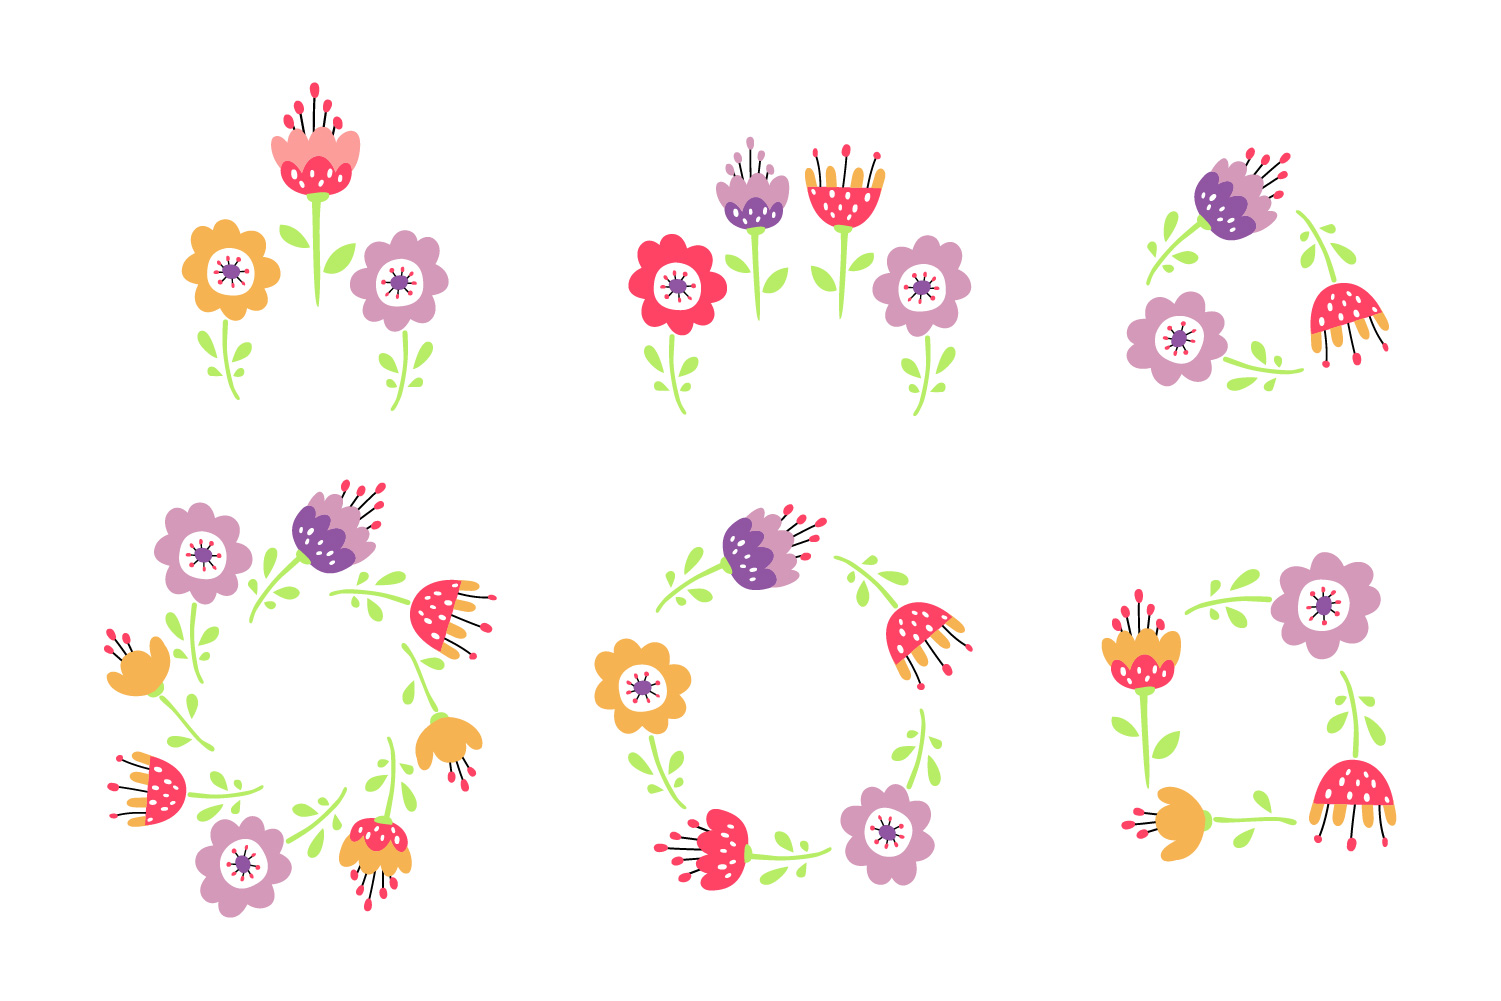 Flower design collection svg example image 3